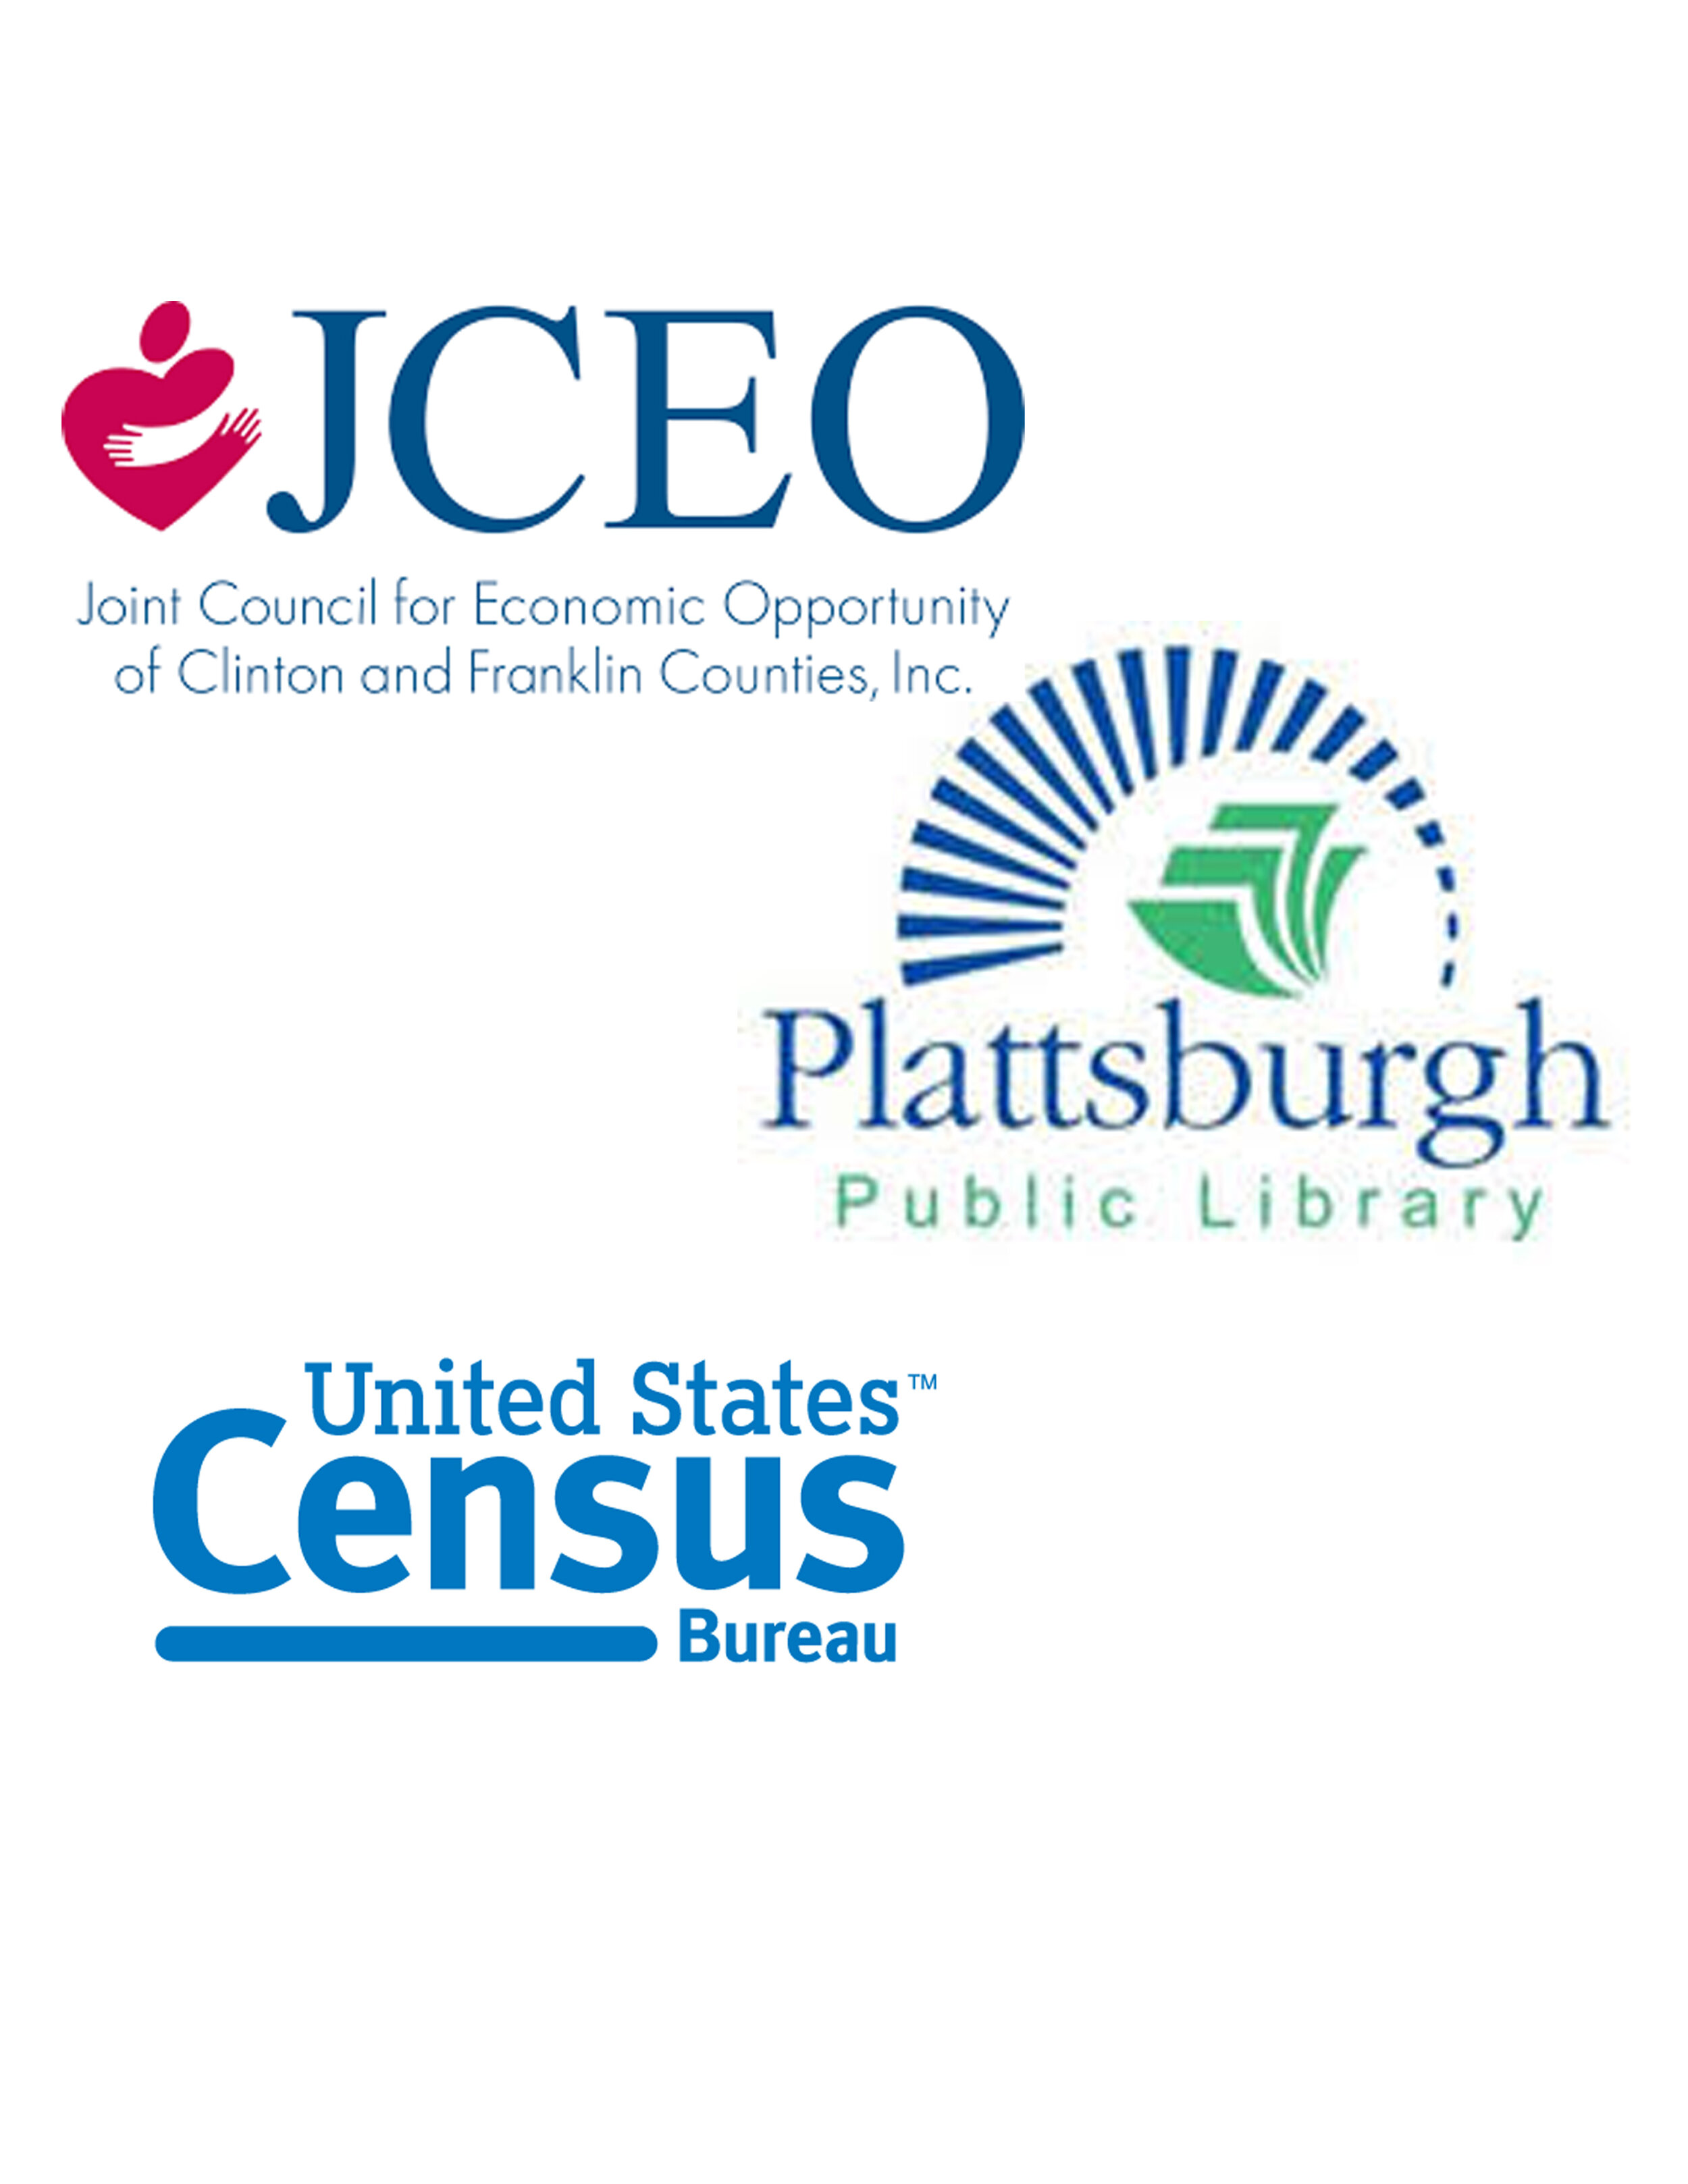 9/19/19: Census Information & Collaboration session - On September 19th, join the Plattsburgh Public Library, JCEO and the U.S. Census Bureau in bringing together a community of local leaders, nonprofits, innovators, businesses, and advocates to develop creative solutions that will move the needle on census response rates in Clinton County. Session will be held at the Plattsburgh Public Library Auditorium at 10am. Click the image to RSVP. For more information contact Sarah Spanburgh at spanburghs@cityofplattsburgh-ny.gov.